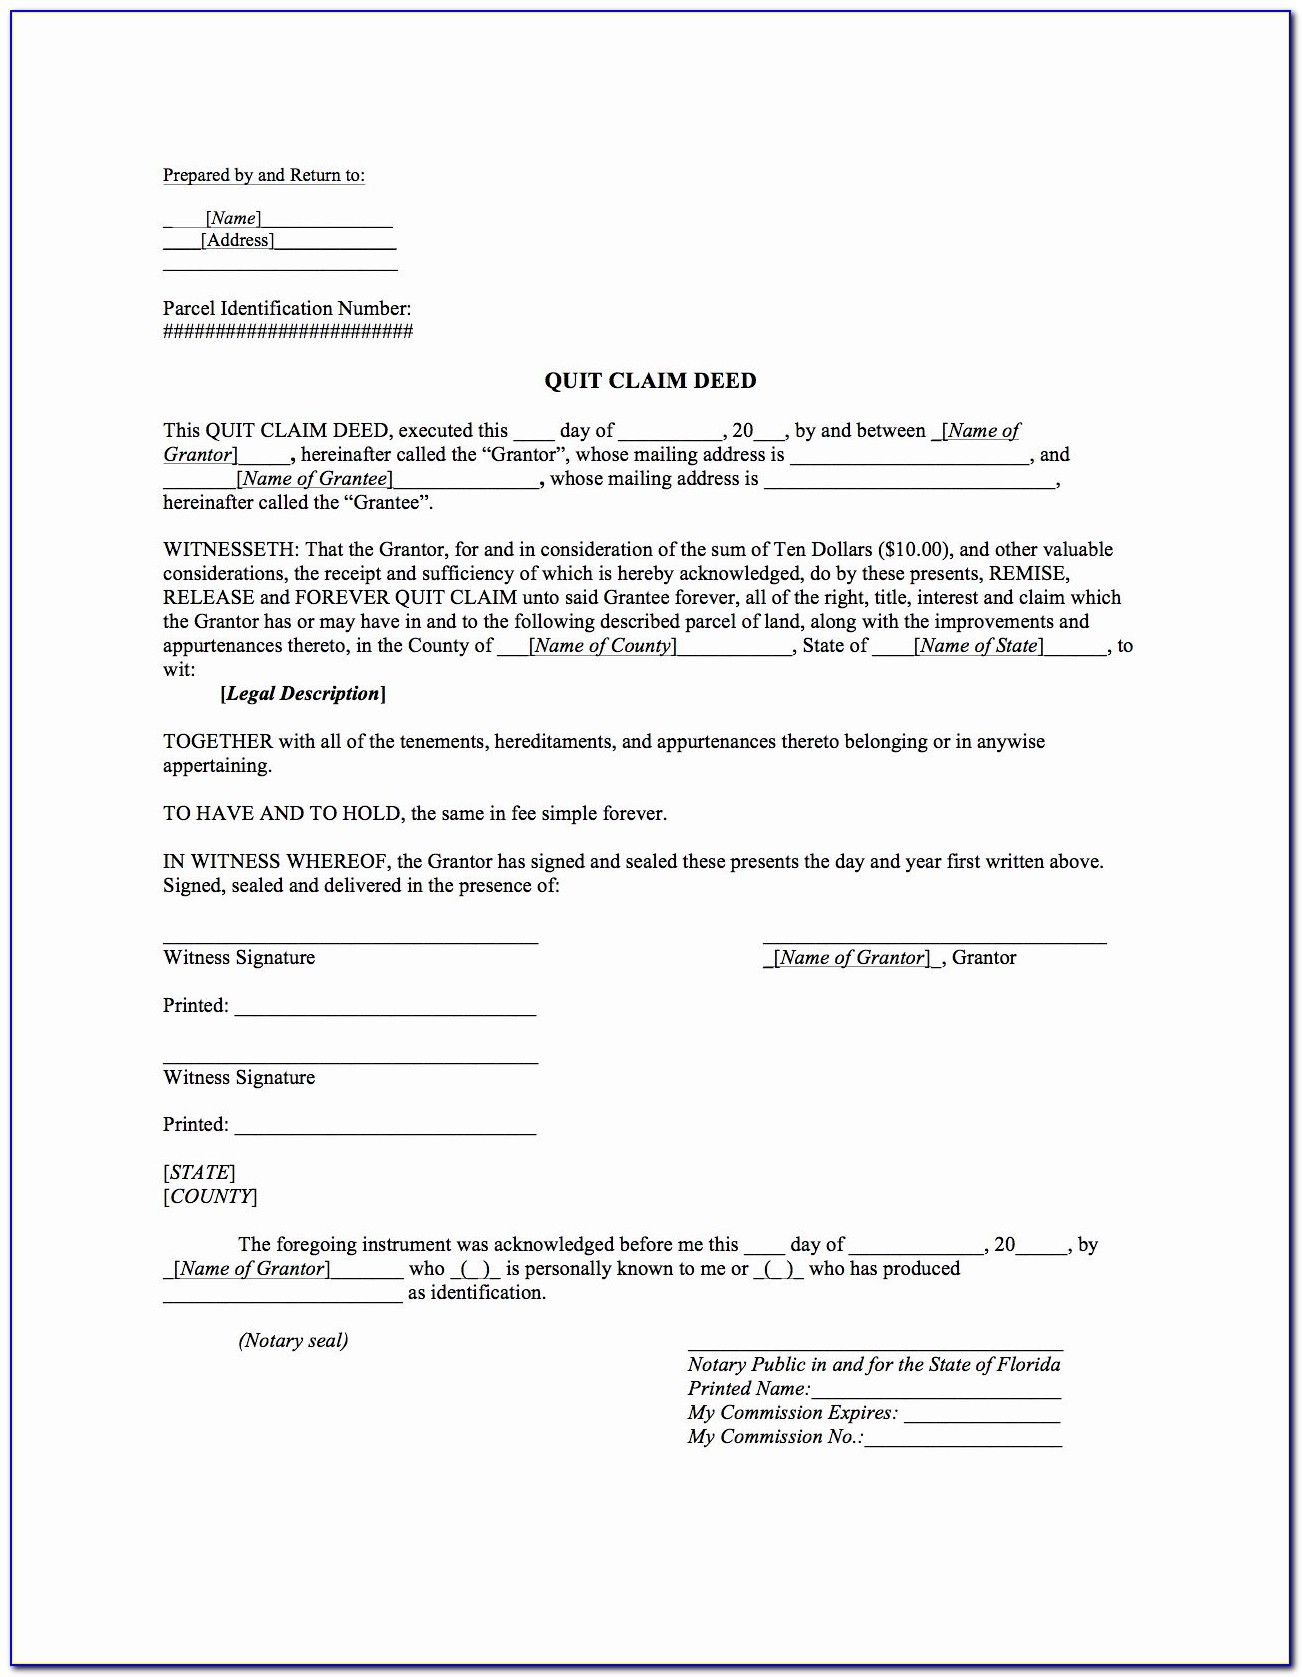 Quitclaim Deed Template Awesome Quit Claim Deed Template ? Boardwalk Legal Aids